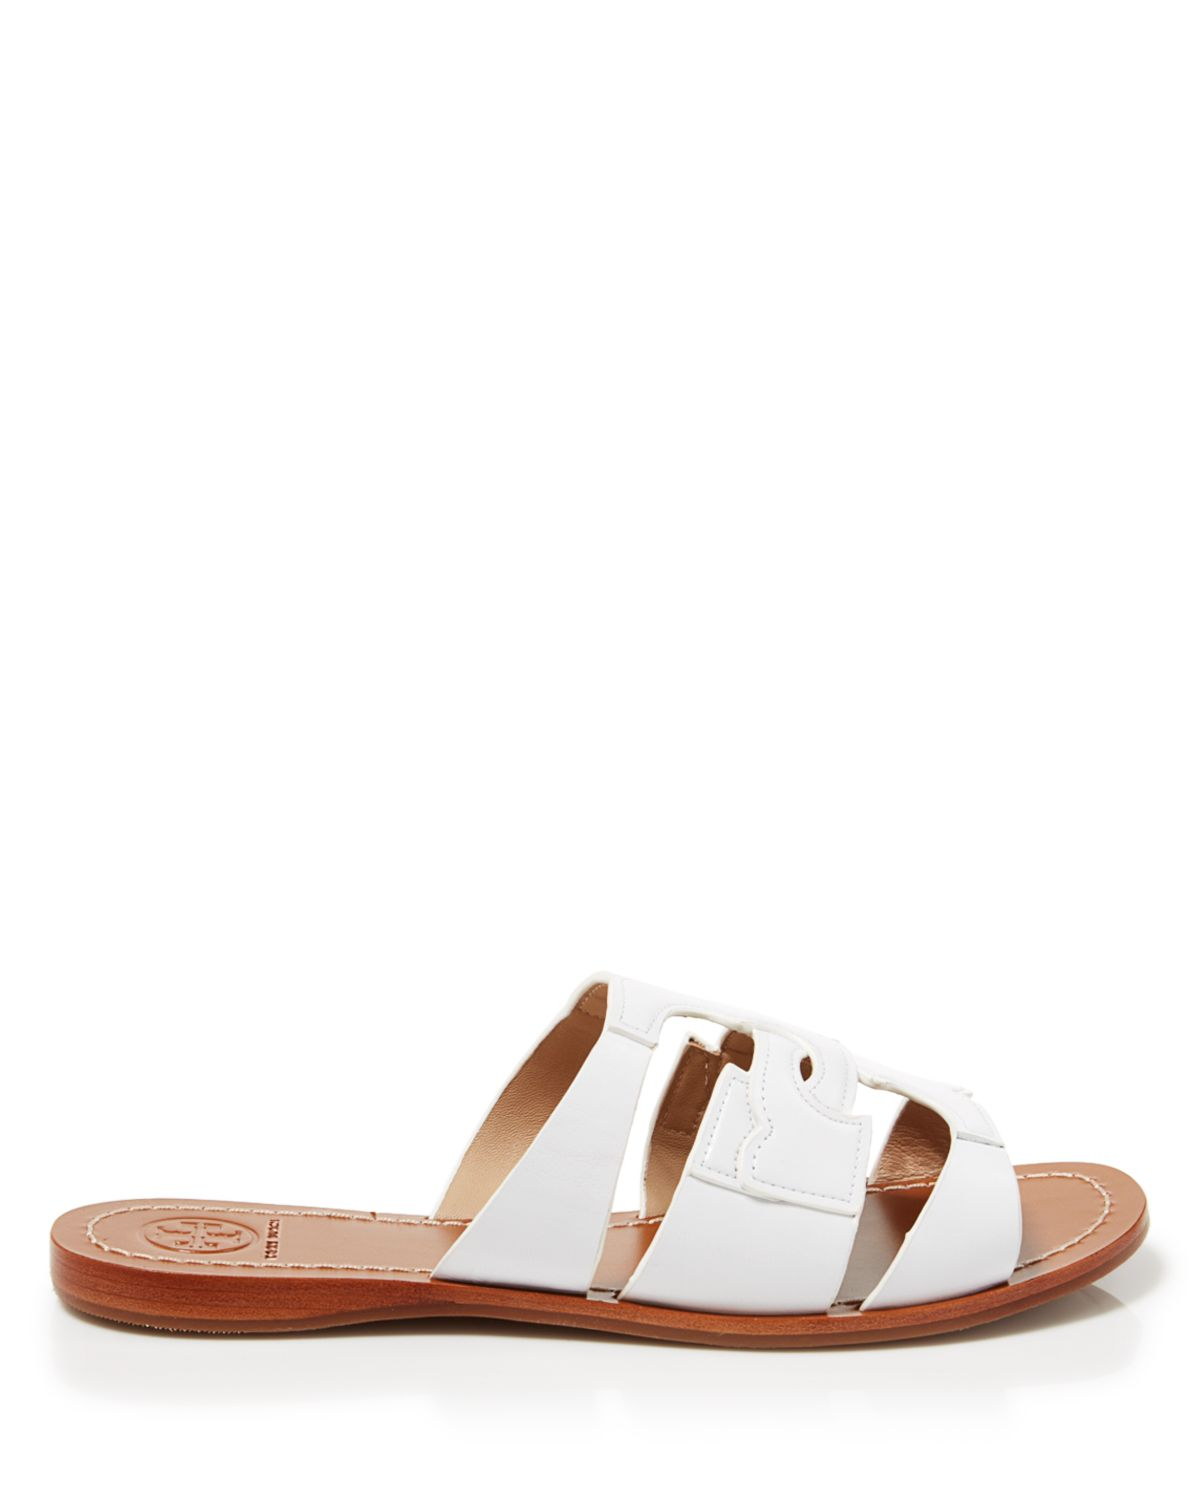 a607c1715 Lyst - Tory Burch Flat Slide Sandals - Anchor in Red